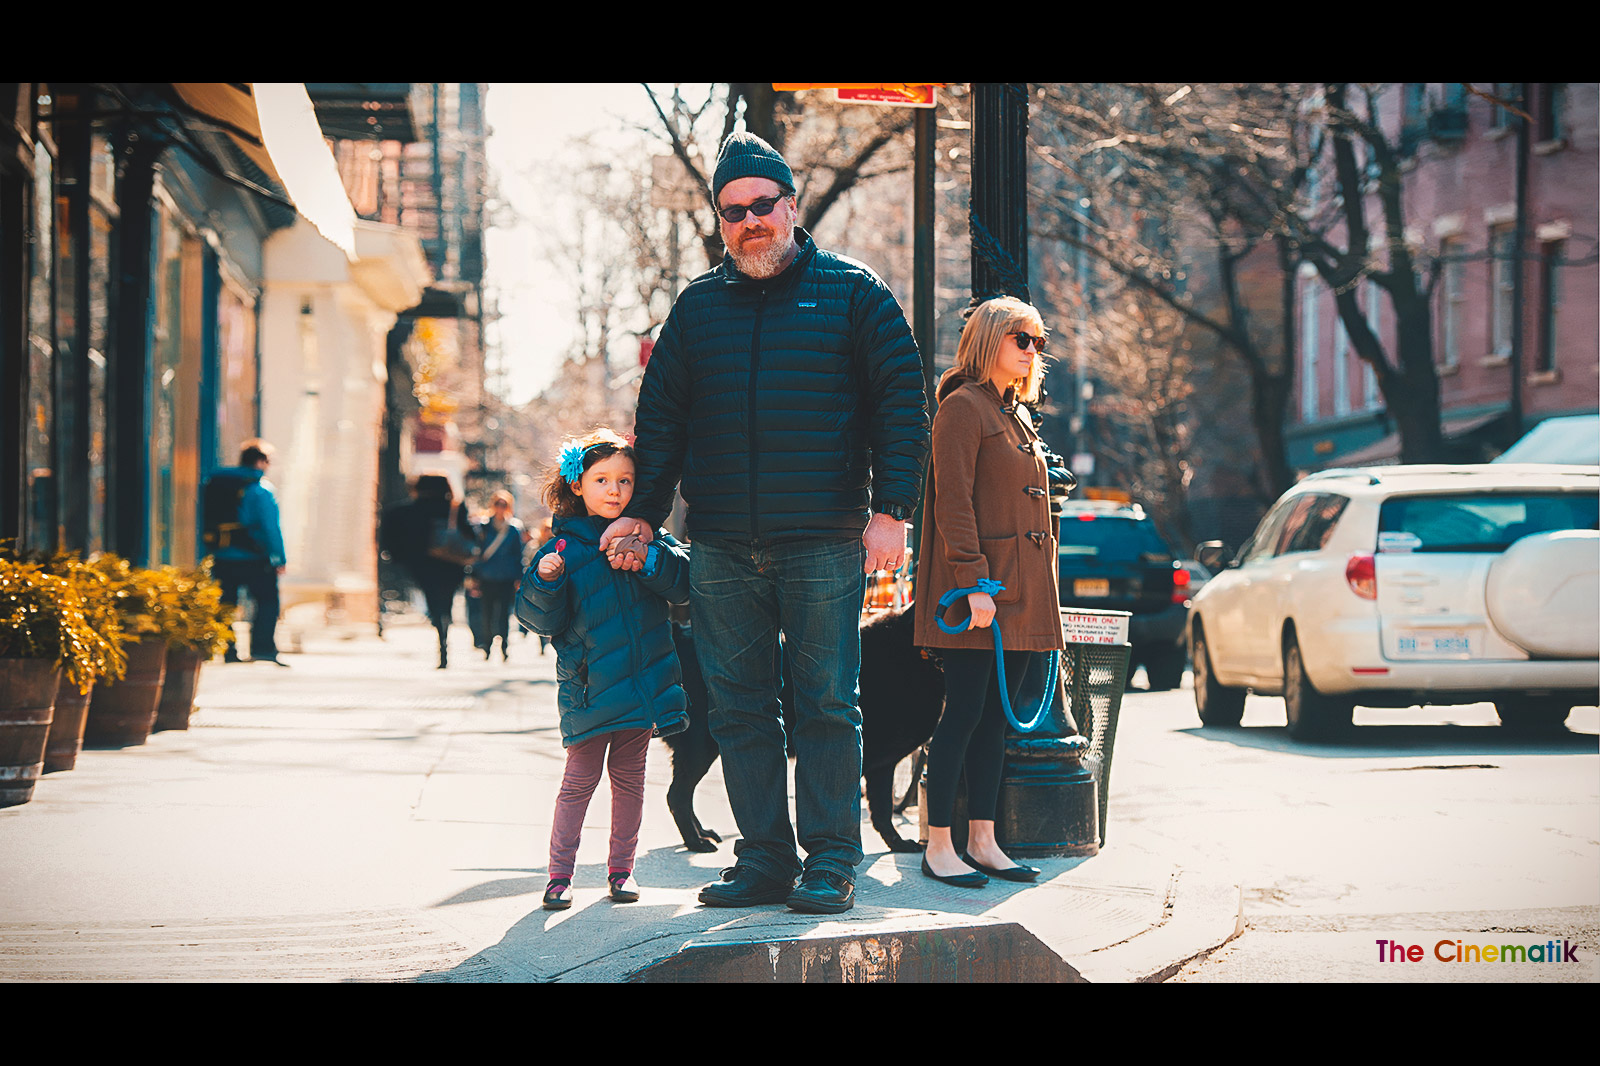 Big daddy holding his little daughter's hand in New York cinematic photograph by Kamal Lahmadi/THE CINEMATIK